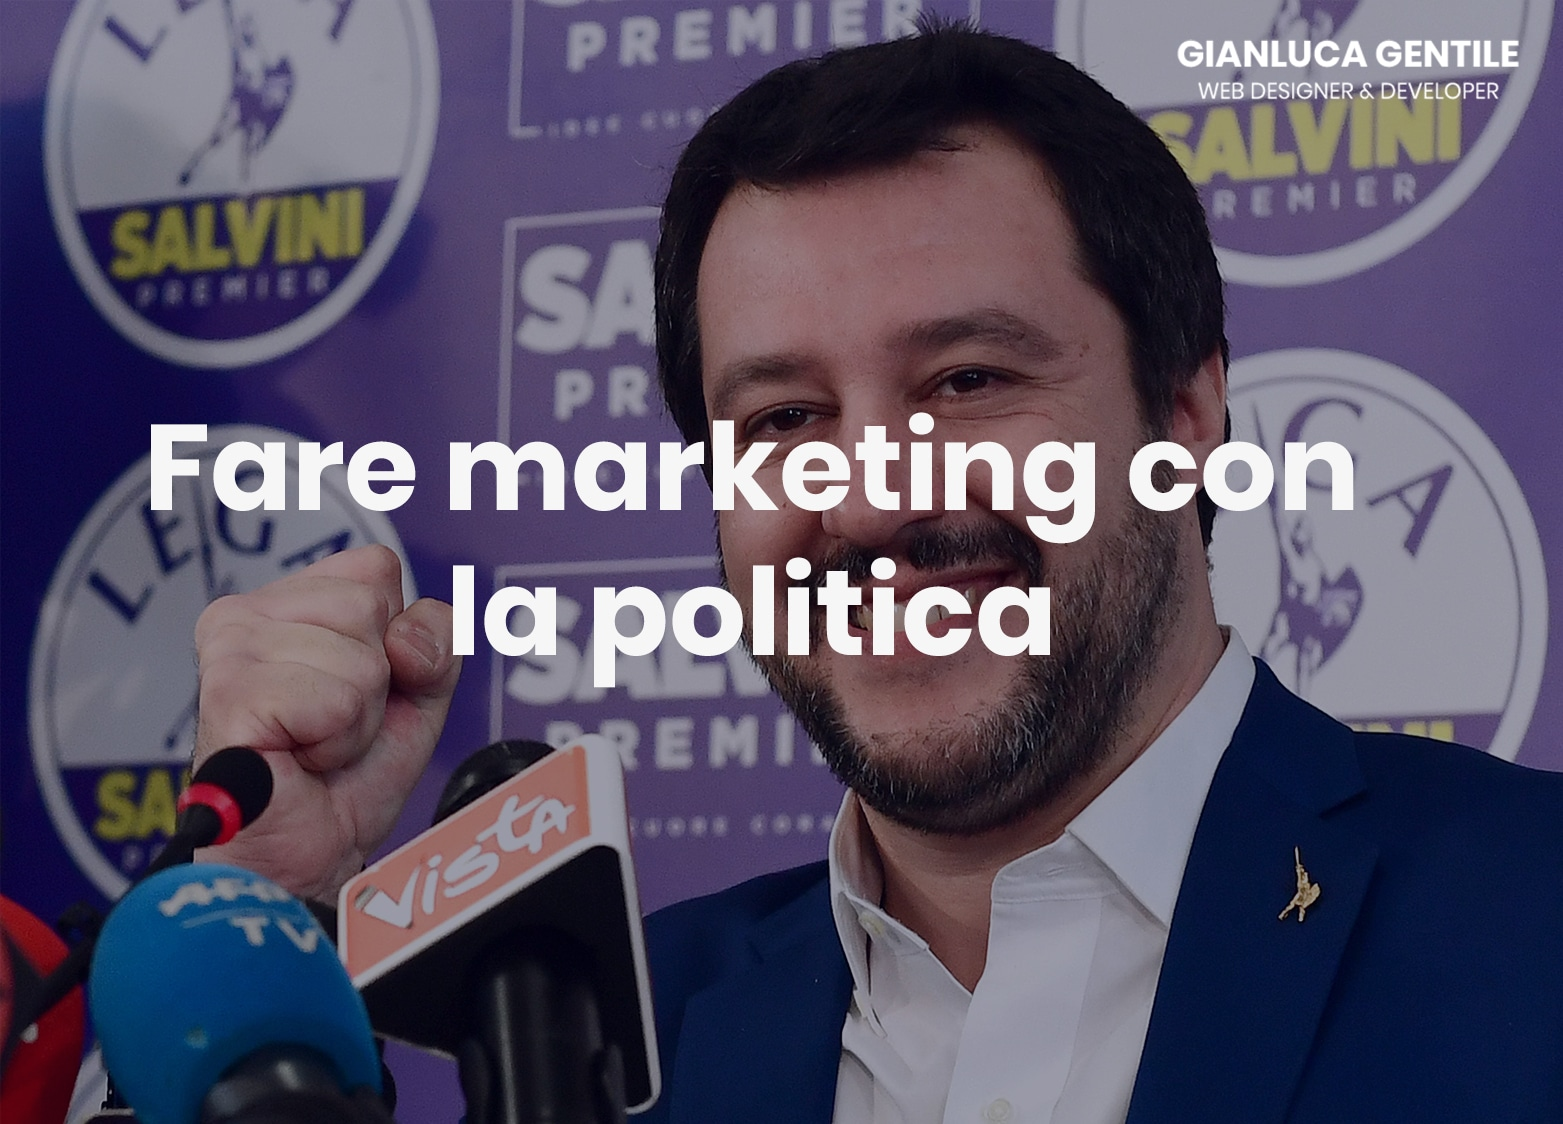 fare marketing con la politica - Fare Marketing con la politica - Fare marketing con la politica